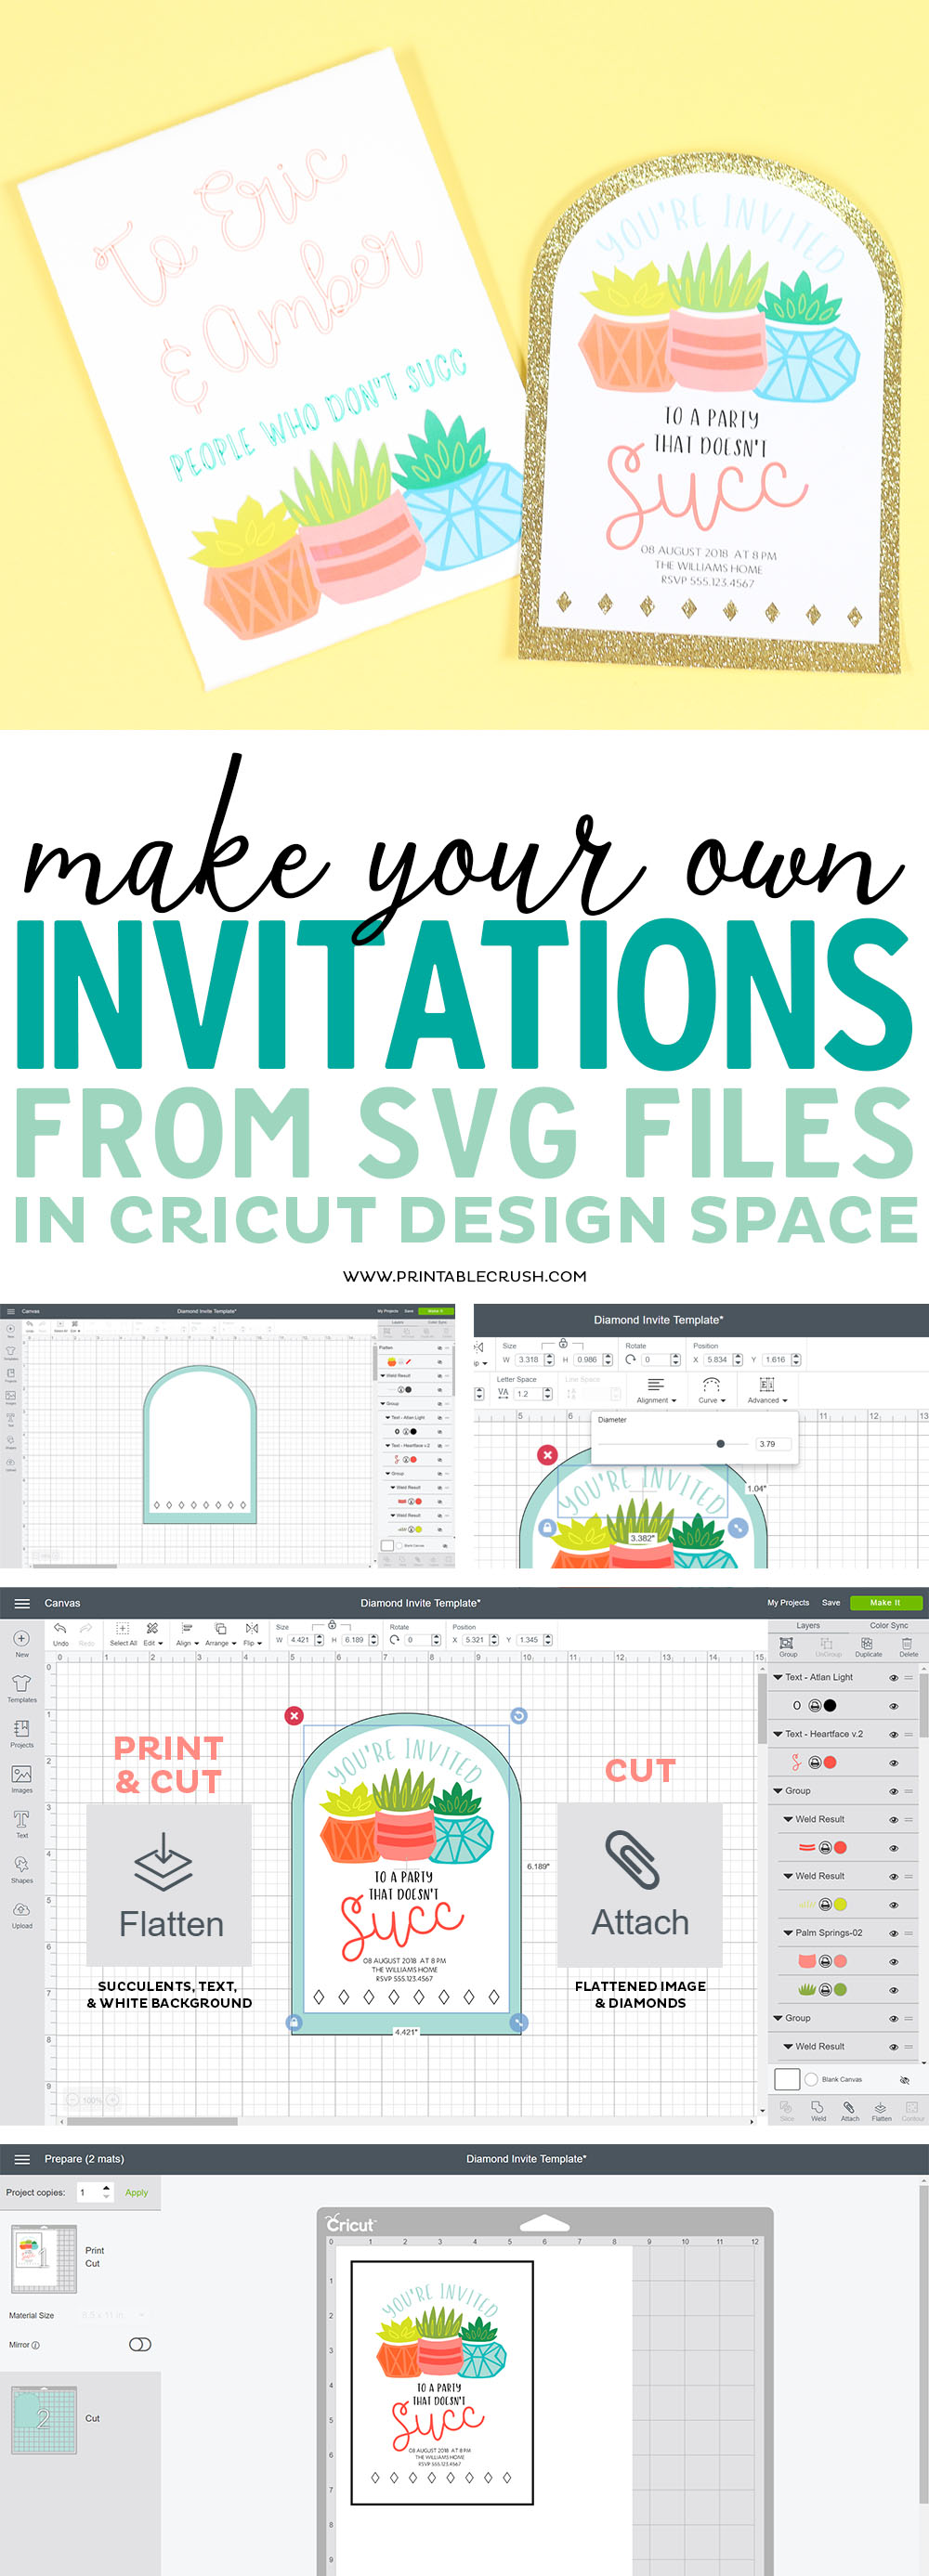 Use Succulent SVG Files to make your own invitations in Cricut Design Space